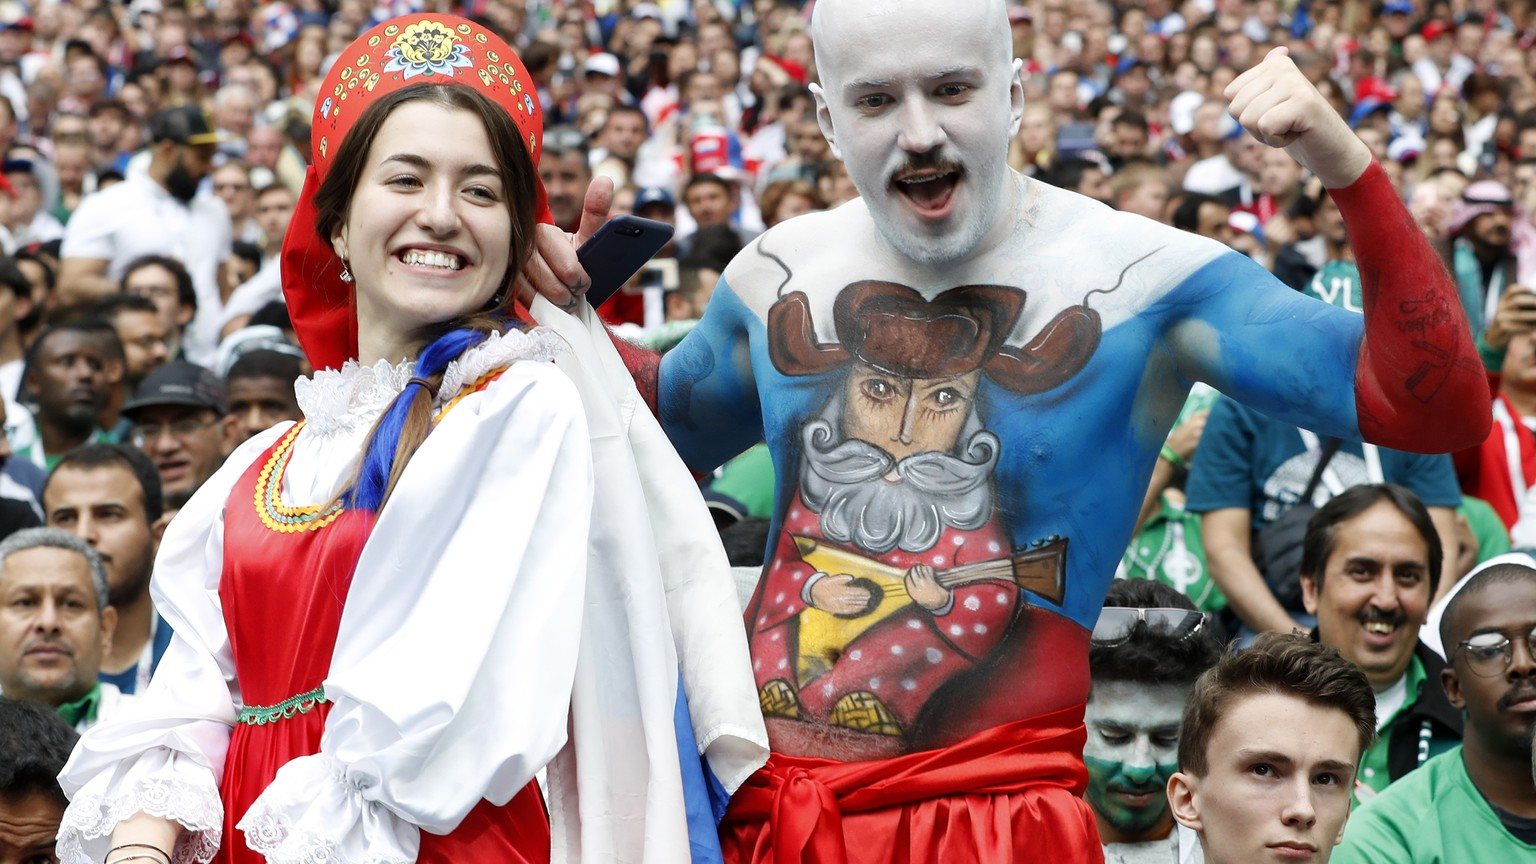 epa06807309 Russian fans pictured before the start of the FIFA World Cup 2018 group A preliminary round soccer match between Russia and Saudi Arabia in Moscow, Russia, 14 June 2018.